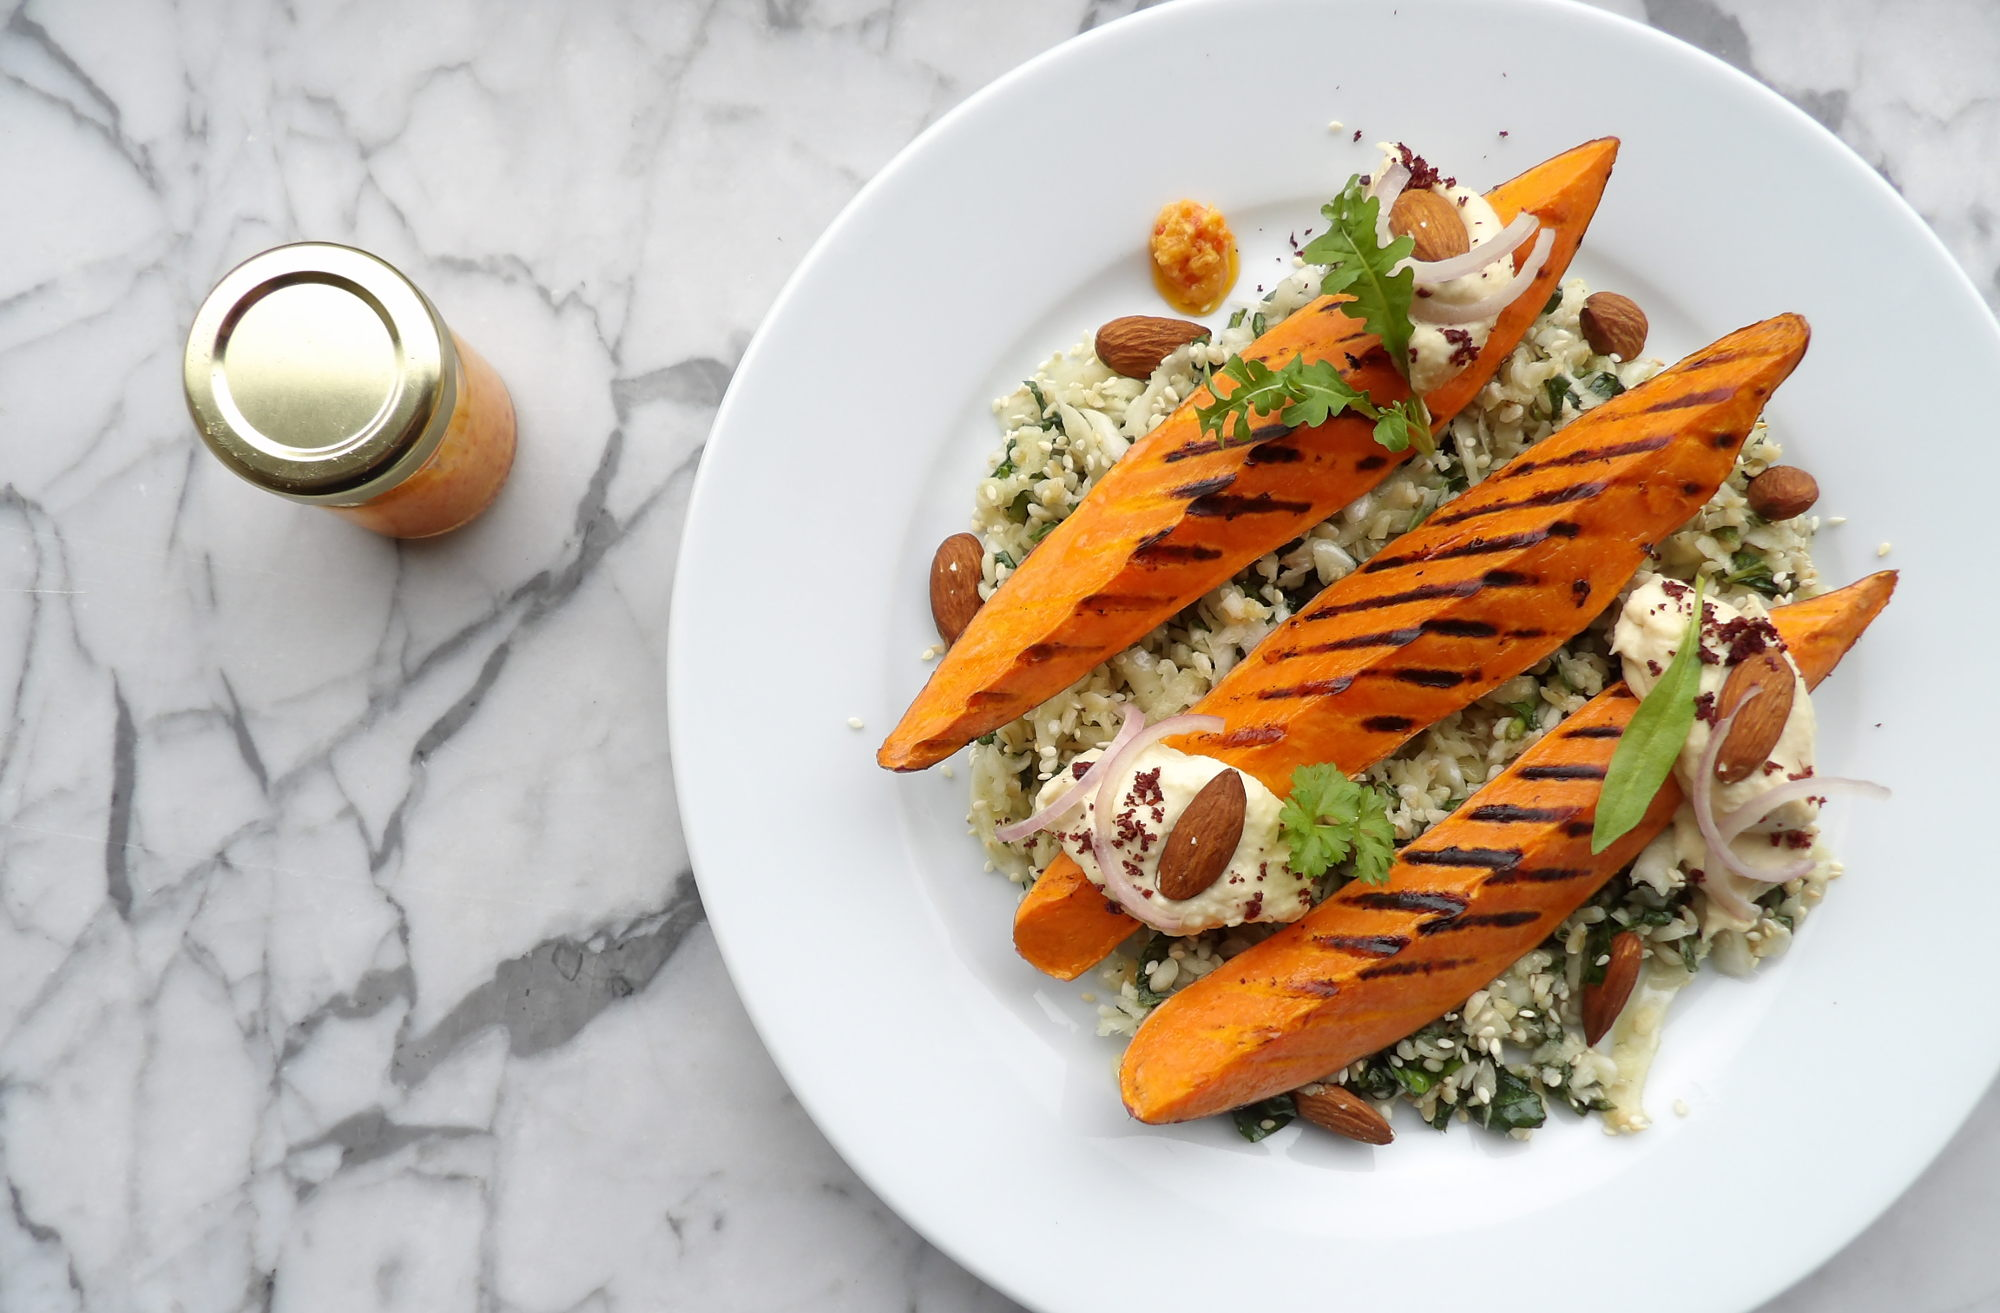 Grilled Sweet Potato with Cabbage Tabouleh and Almond Houmous